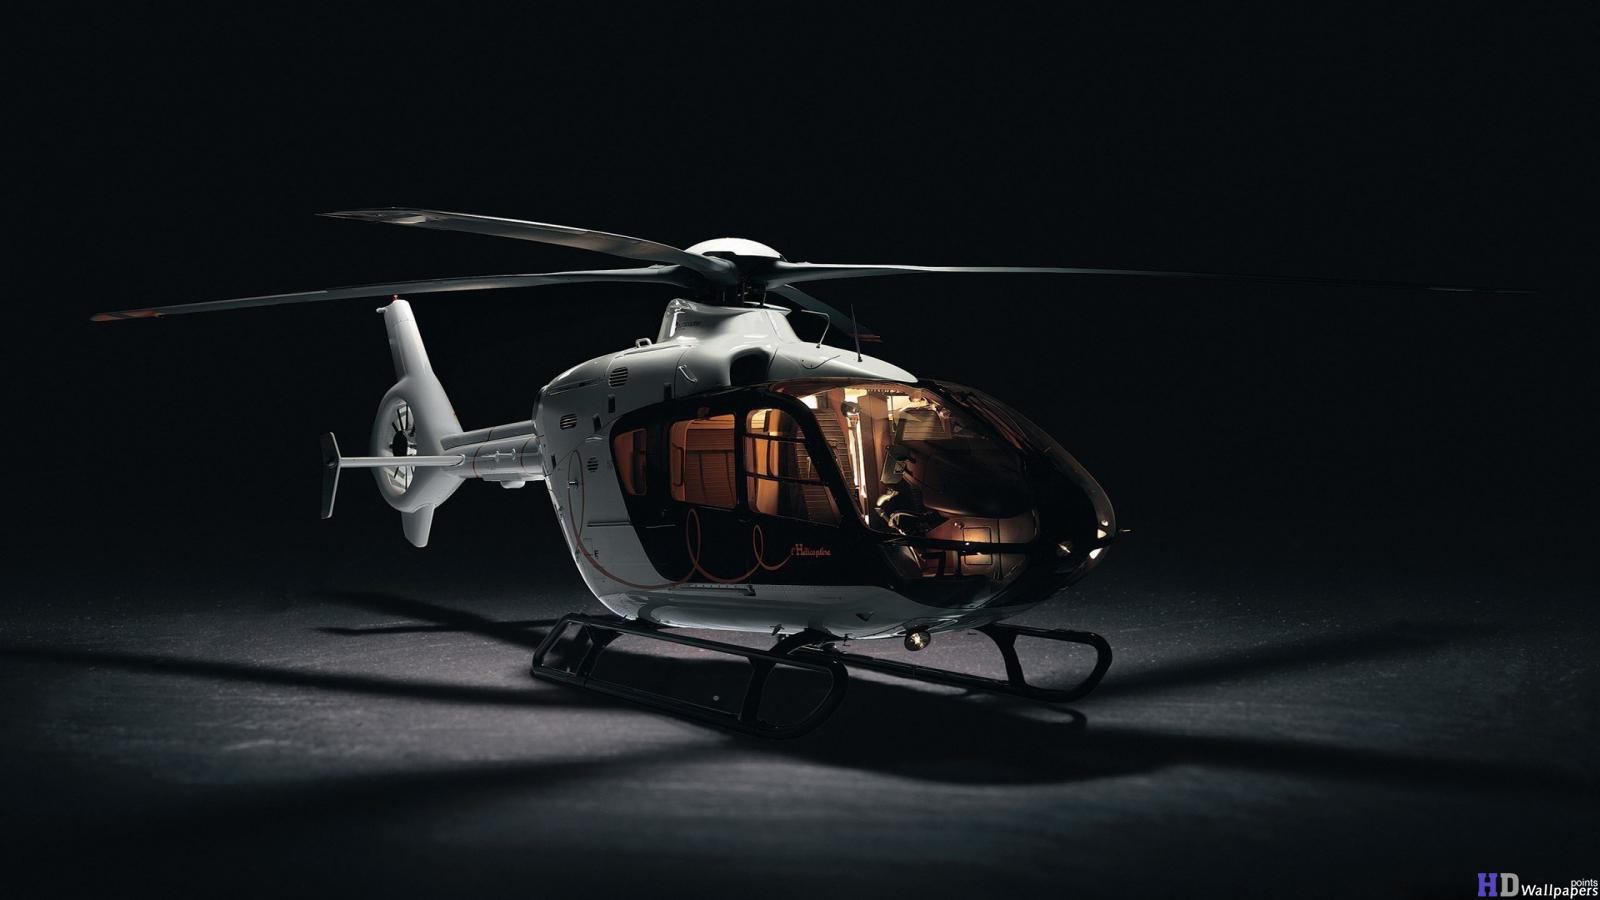 Helicopter 3D Wallpapers HD Wallpaper 1600x900